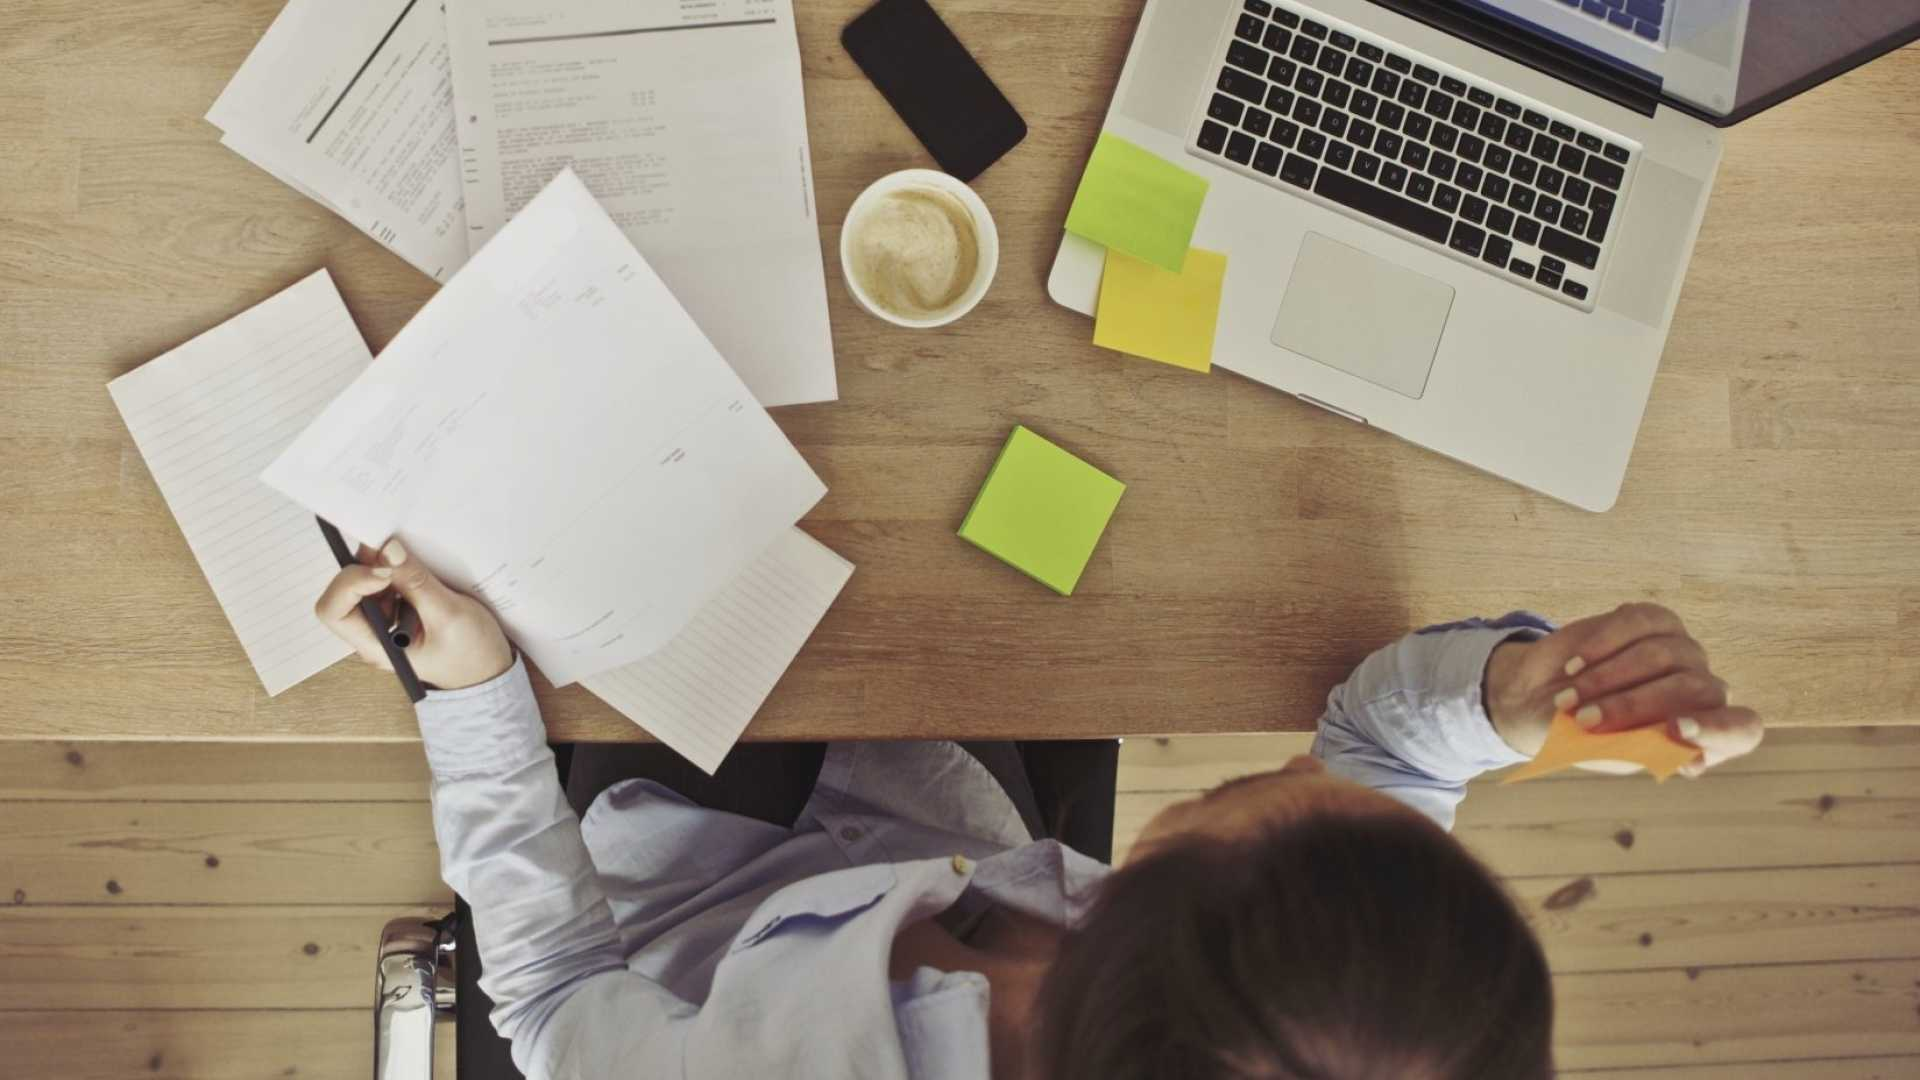 18 Ways to Make the First 10 Minutes of Your Workday Super Productive